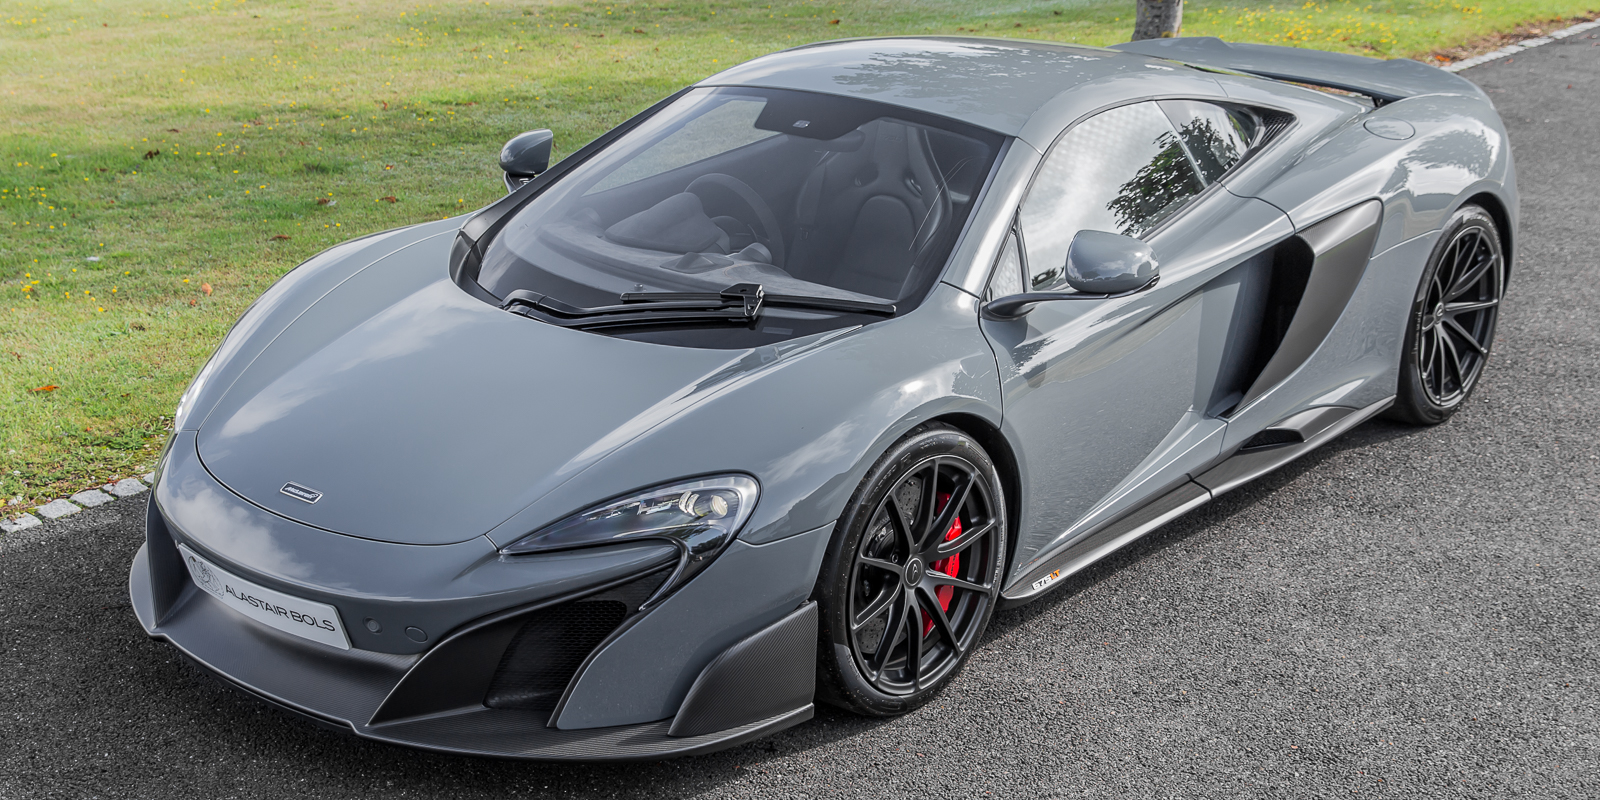 McLaren 675LT Coupe – SOLD but looking for more.